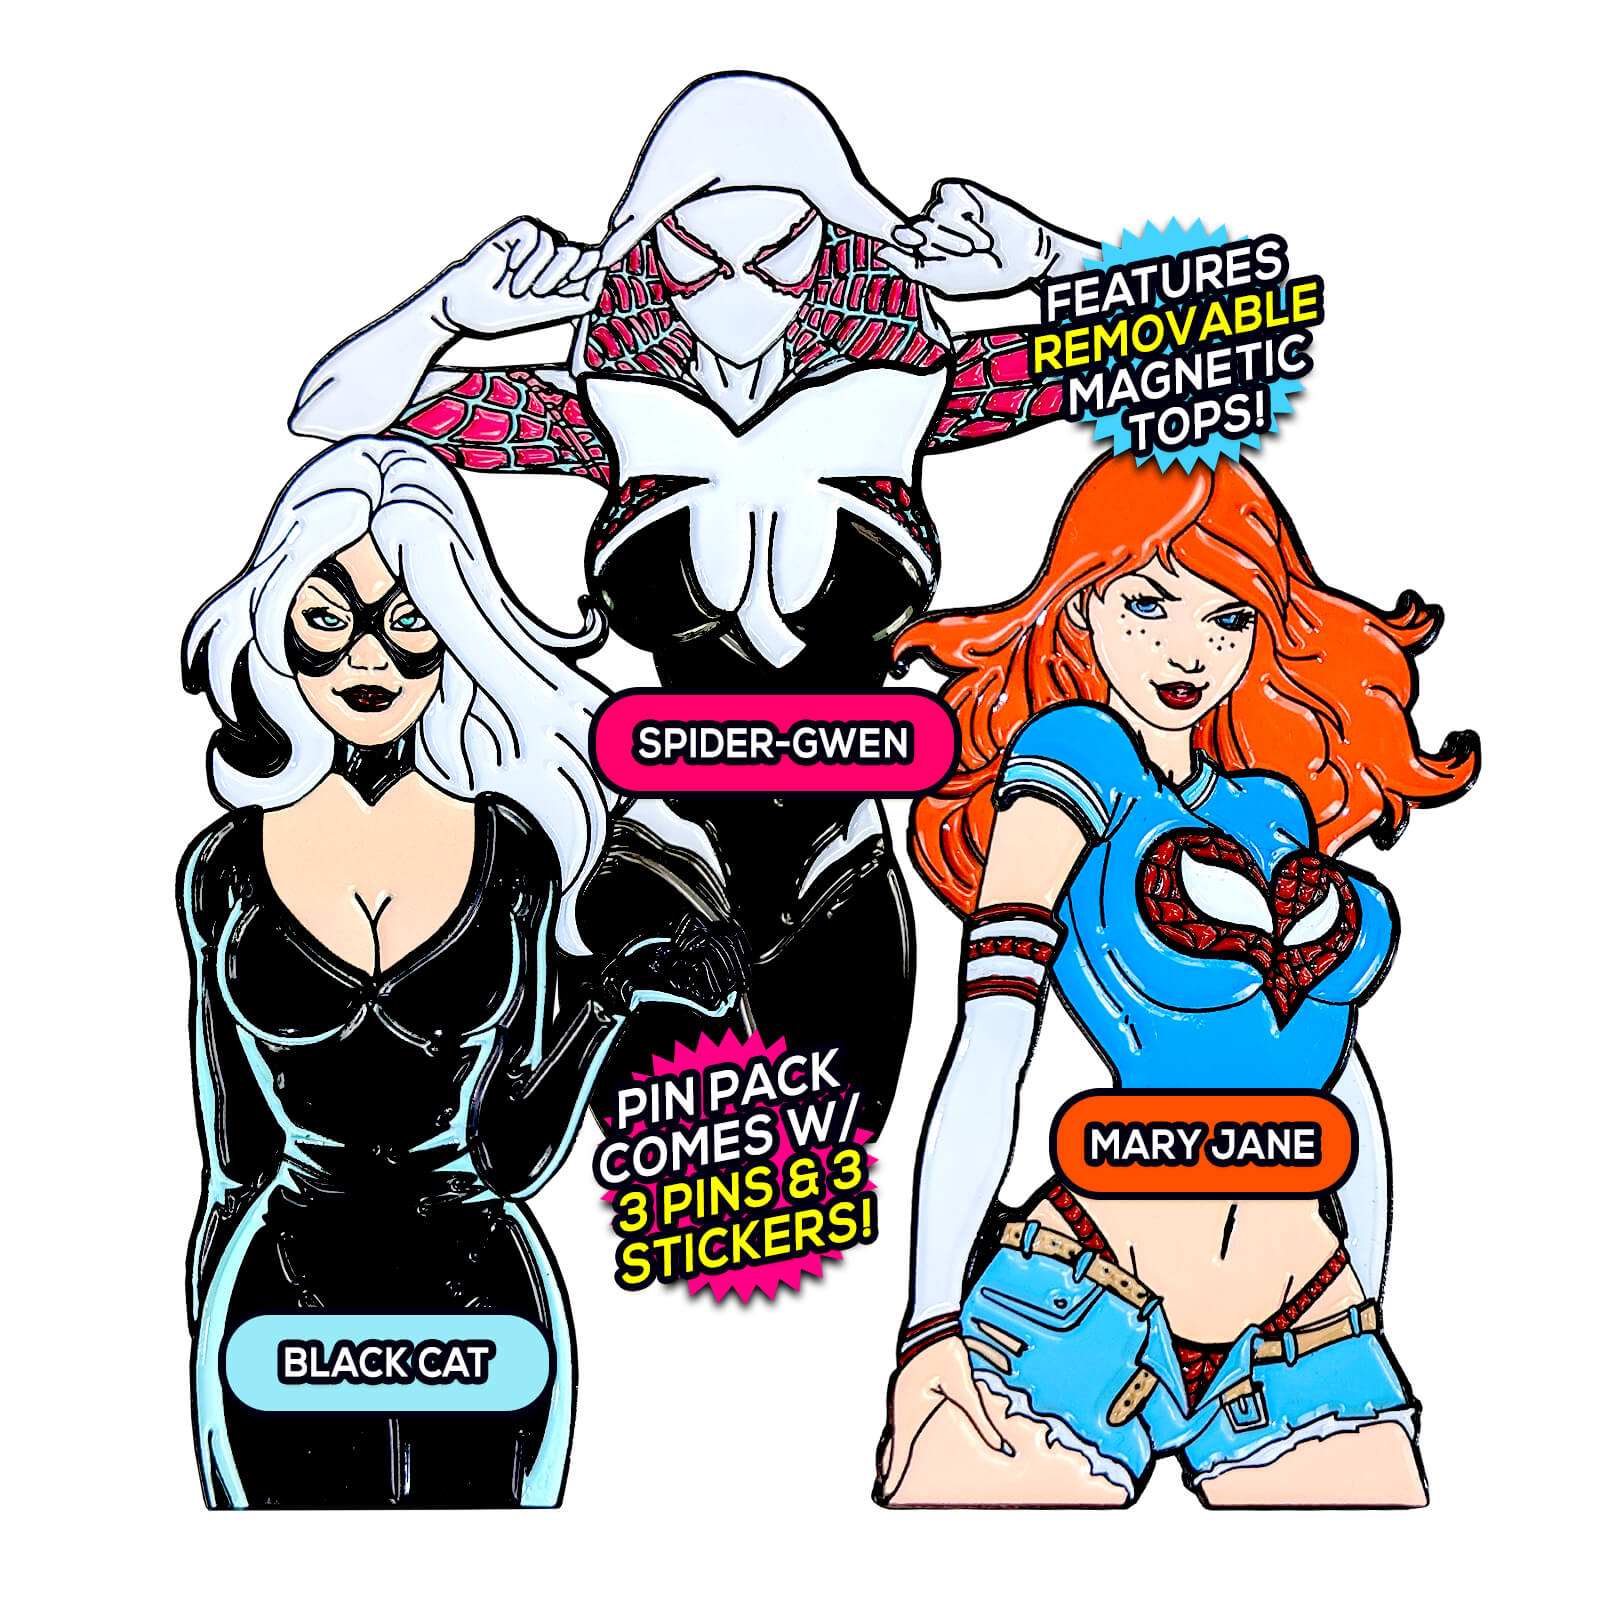 Spider Girls After Hours (3 Pin) Pin Pack [Includes 3 FREE Stickers]